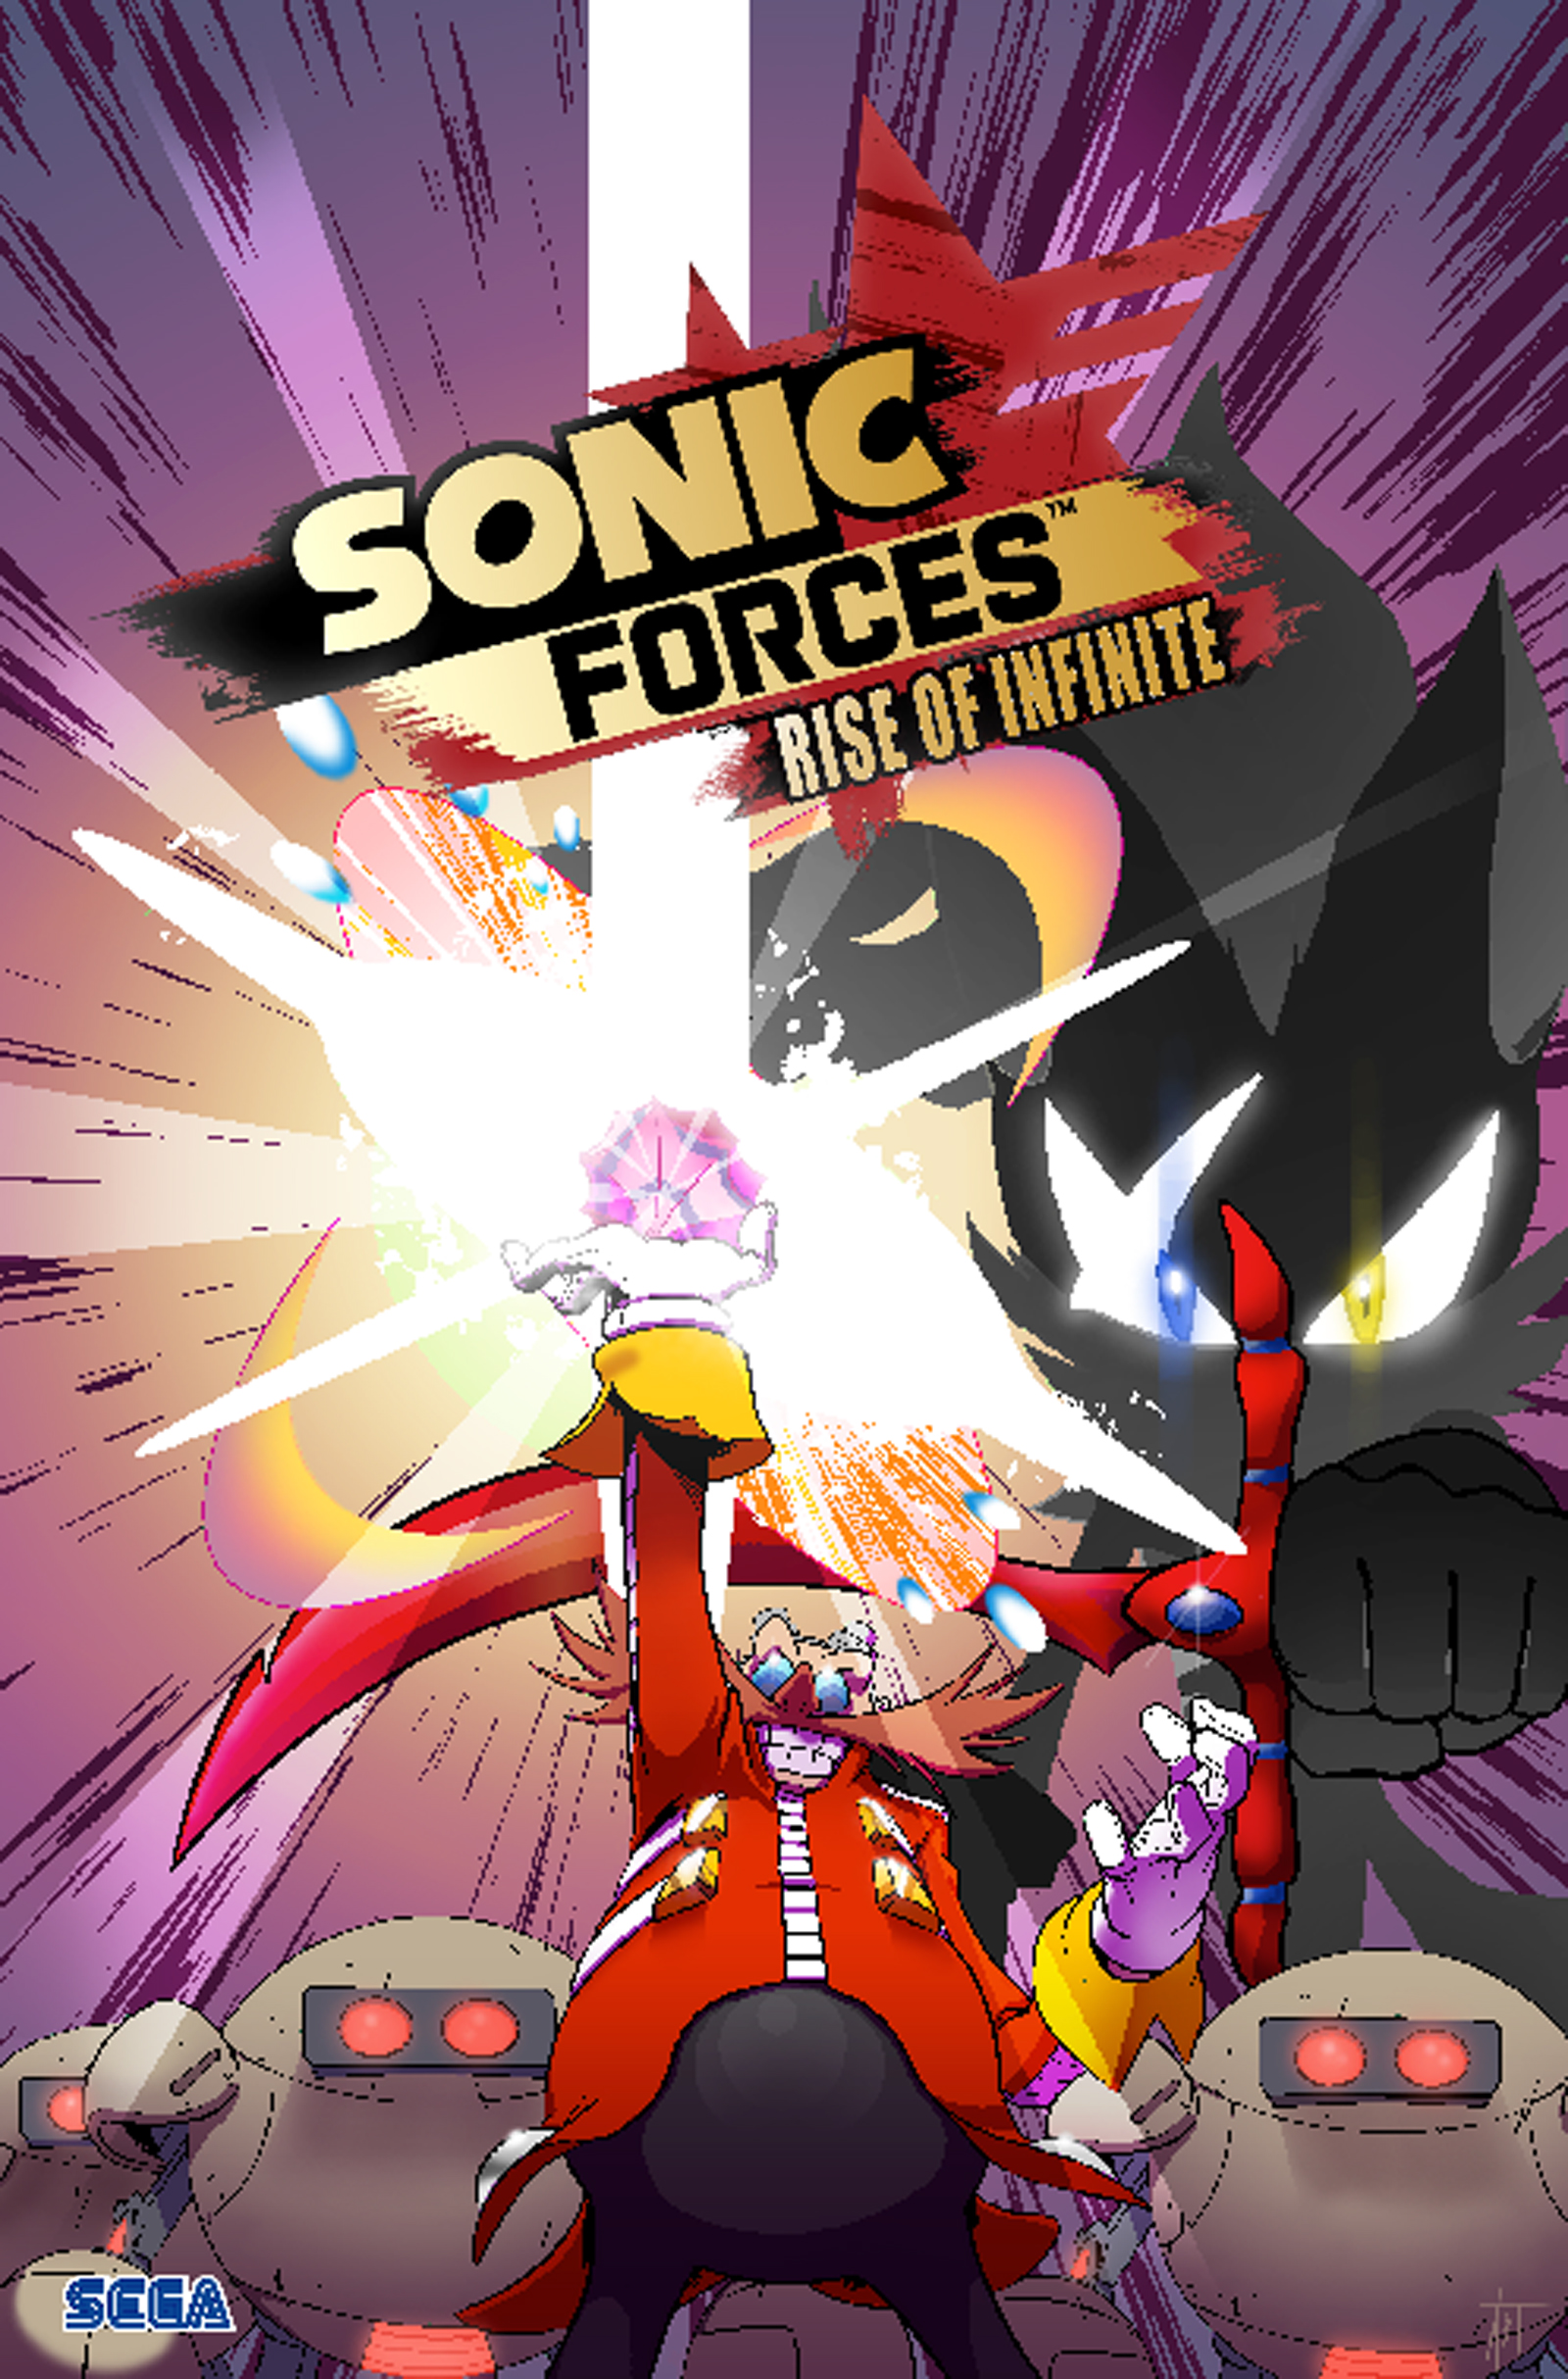 Read Download The Final Sonic Forces Comic Issue 4 Gamewatcher